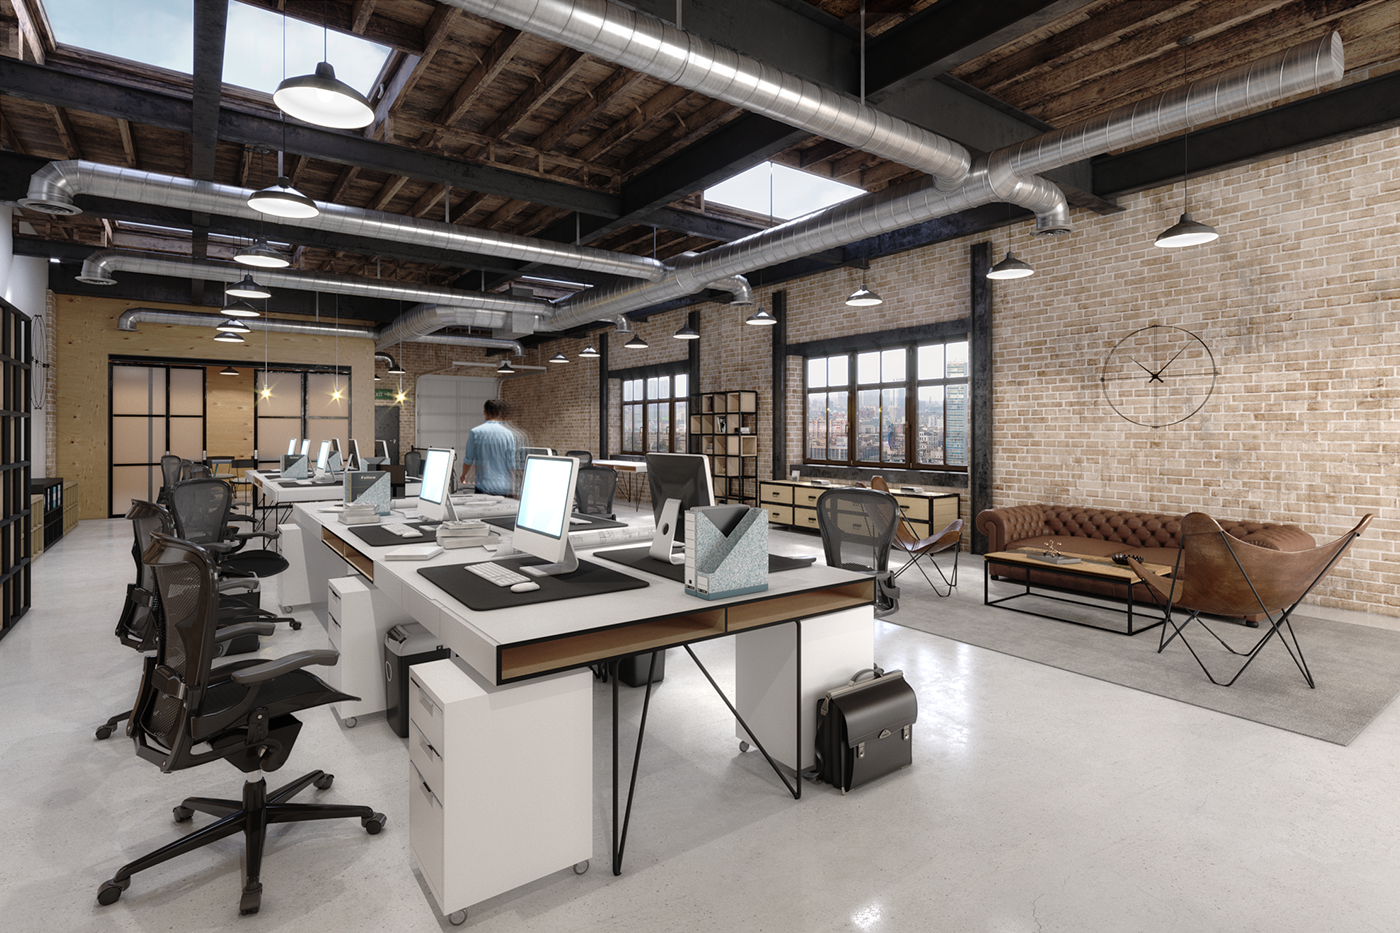 LOFT OFFICE SPACE On Behance